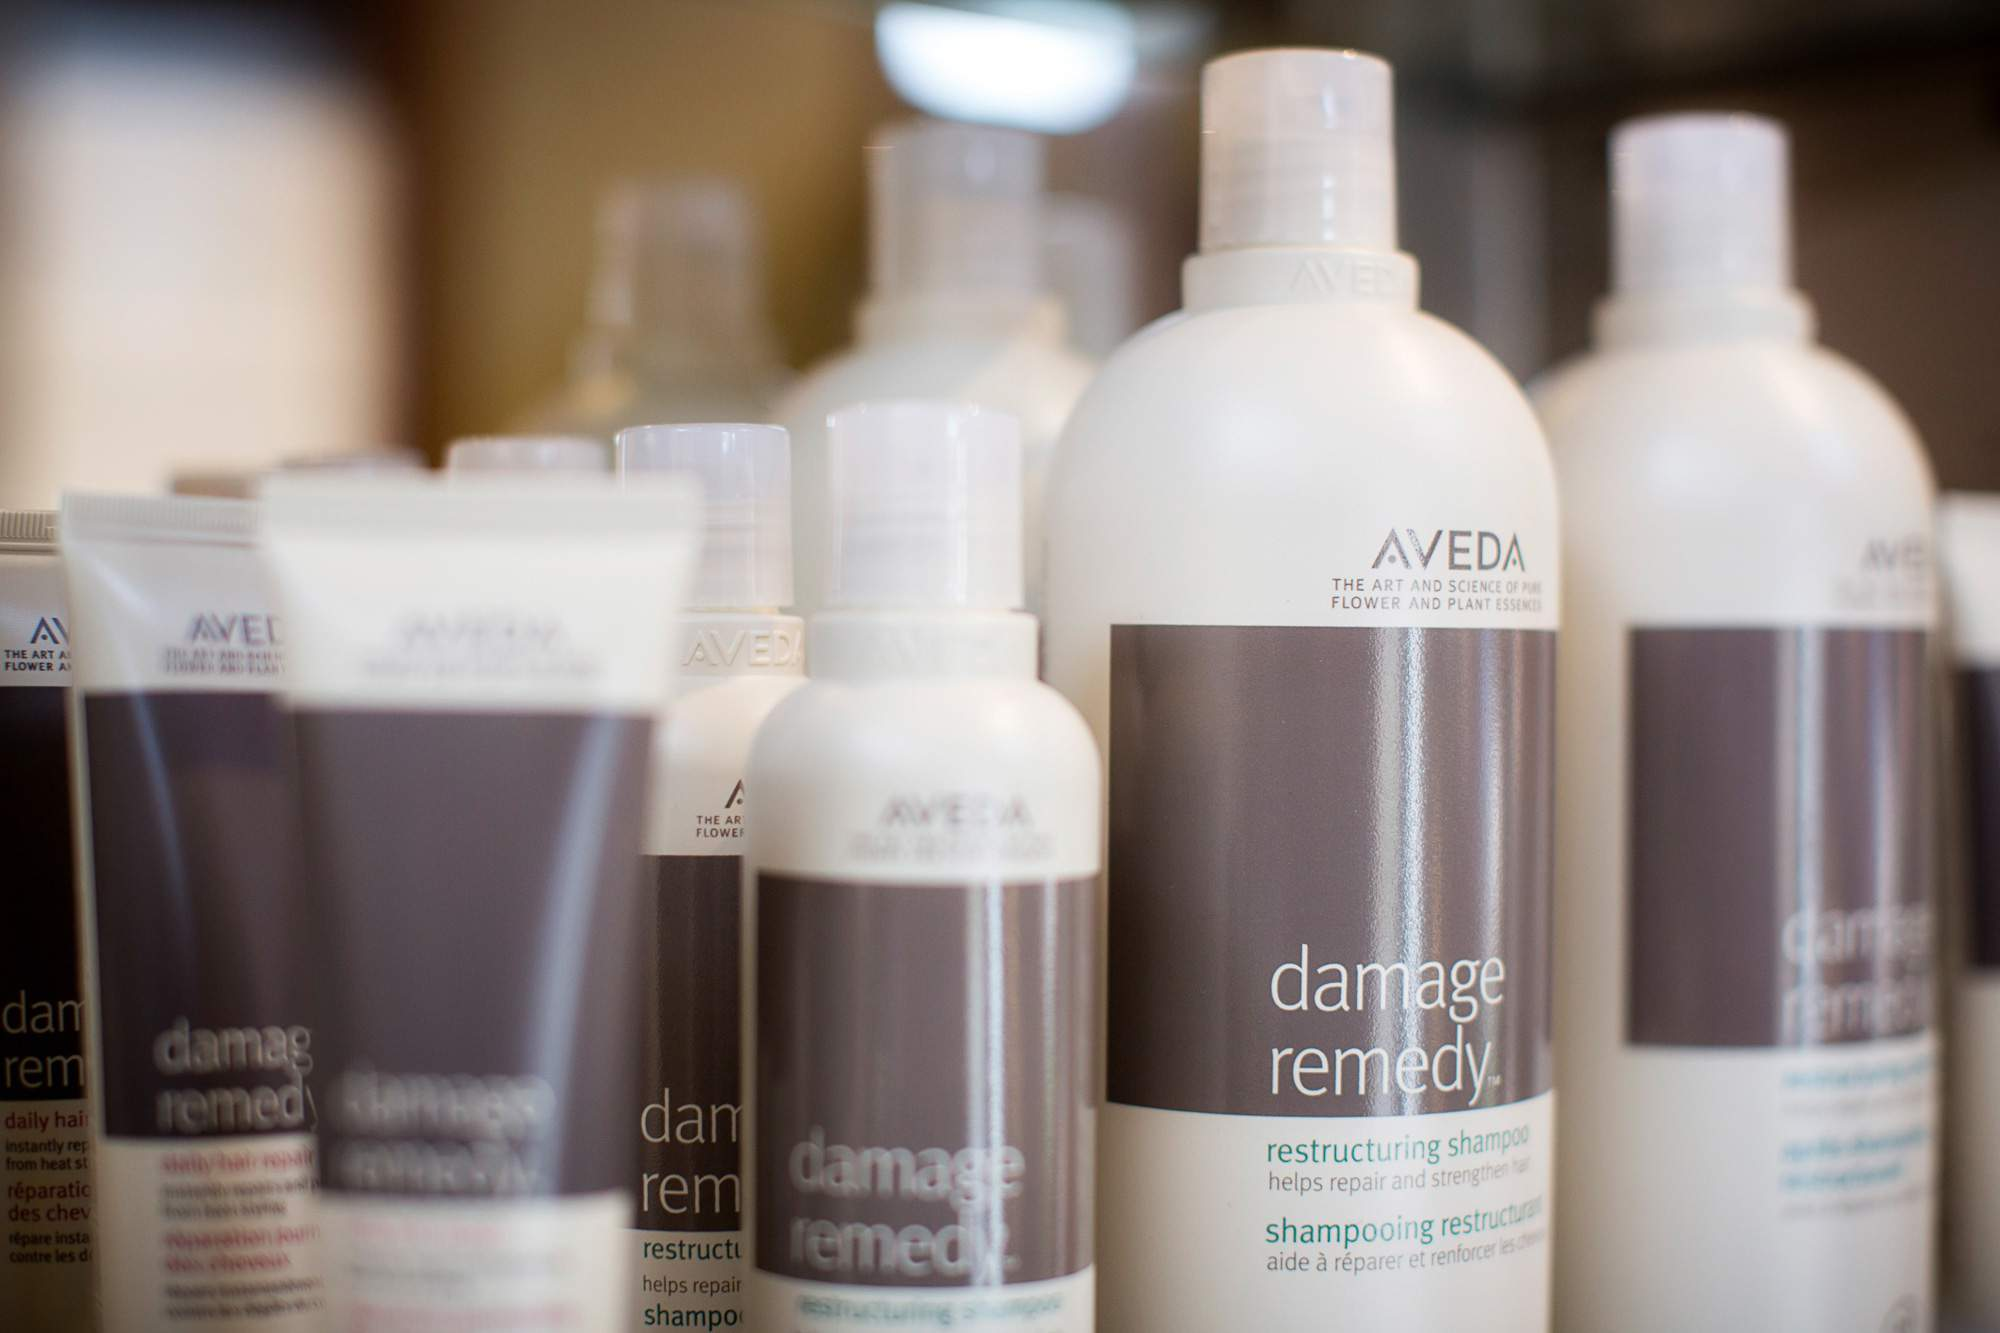 Aveda Damage Remedy - Salon Products - Rapunzels Salon and Spa - Canmore